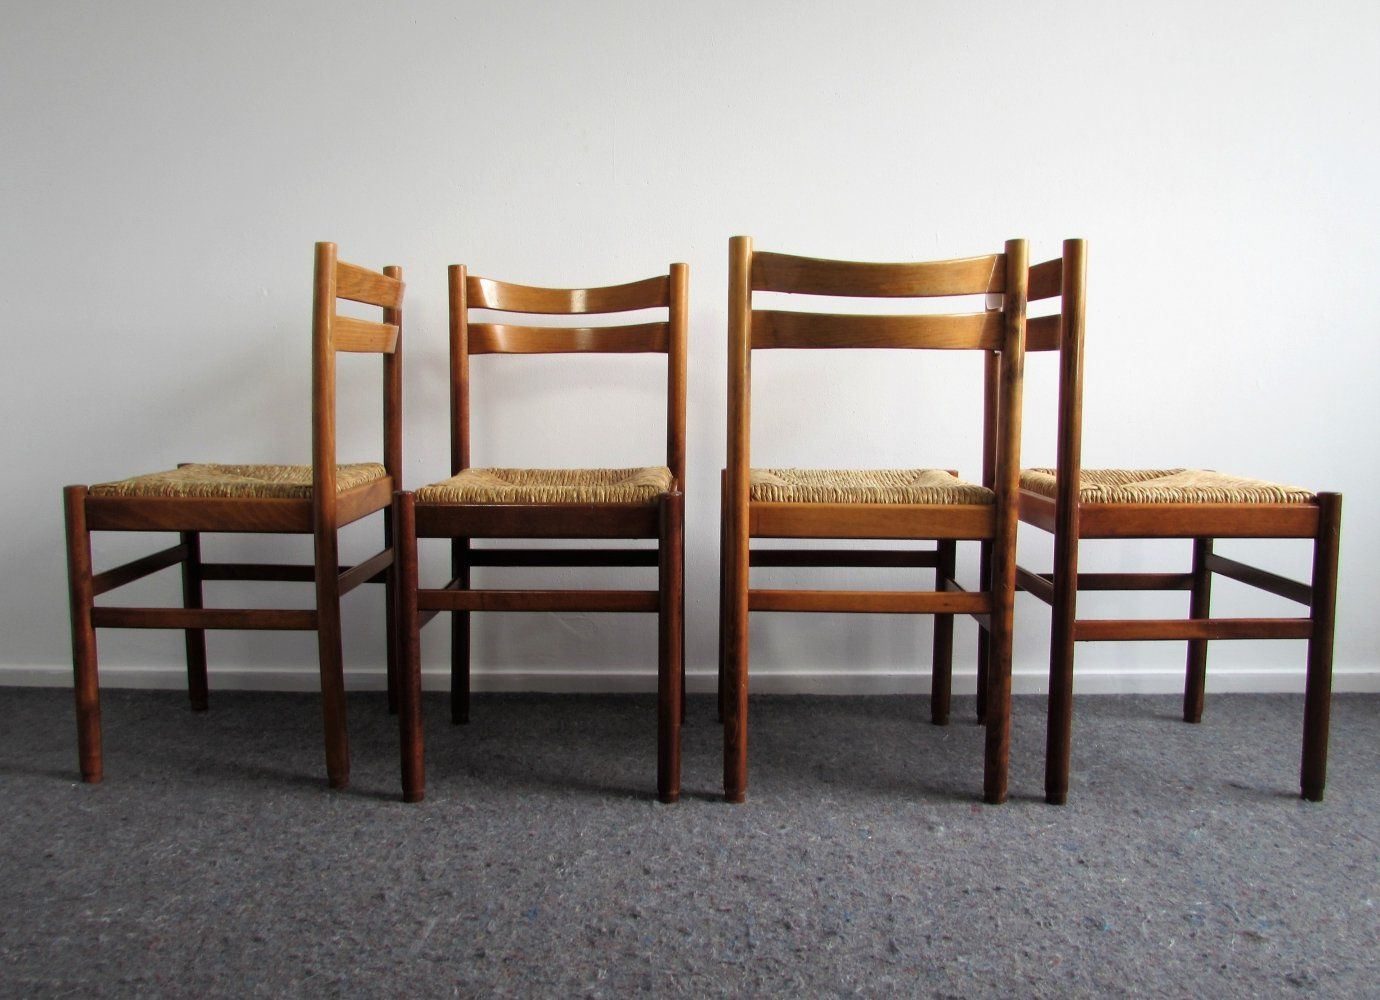 For Sale Set Of 4 Mid Century Modern Rush Seat Dining Chairs